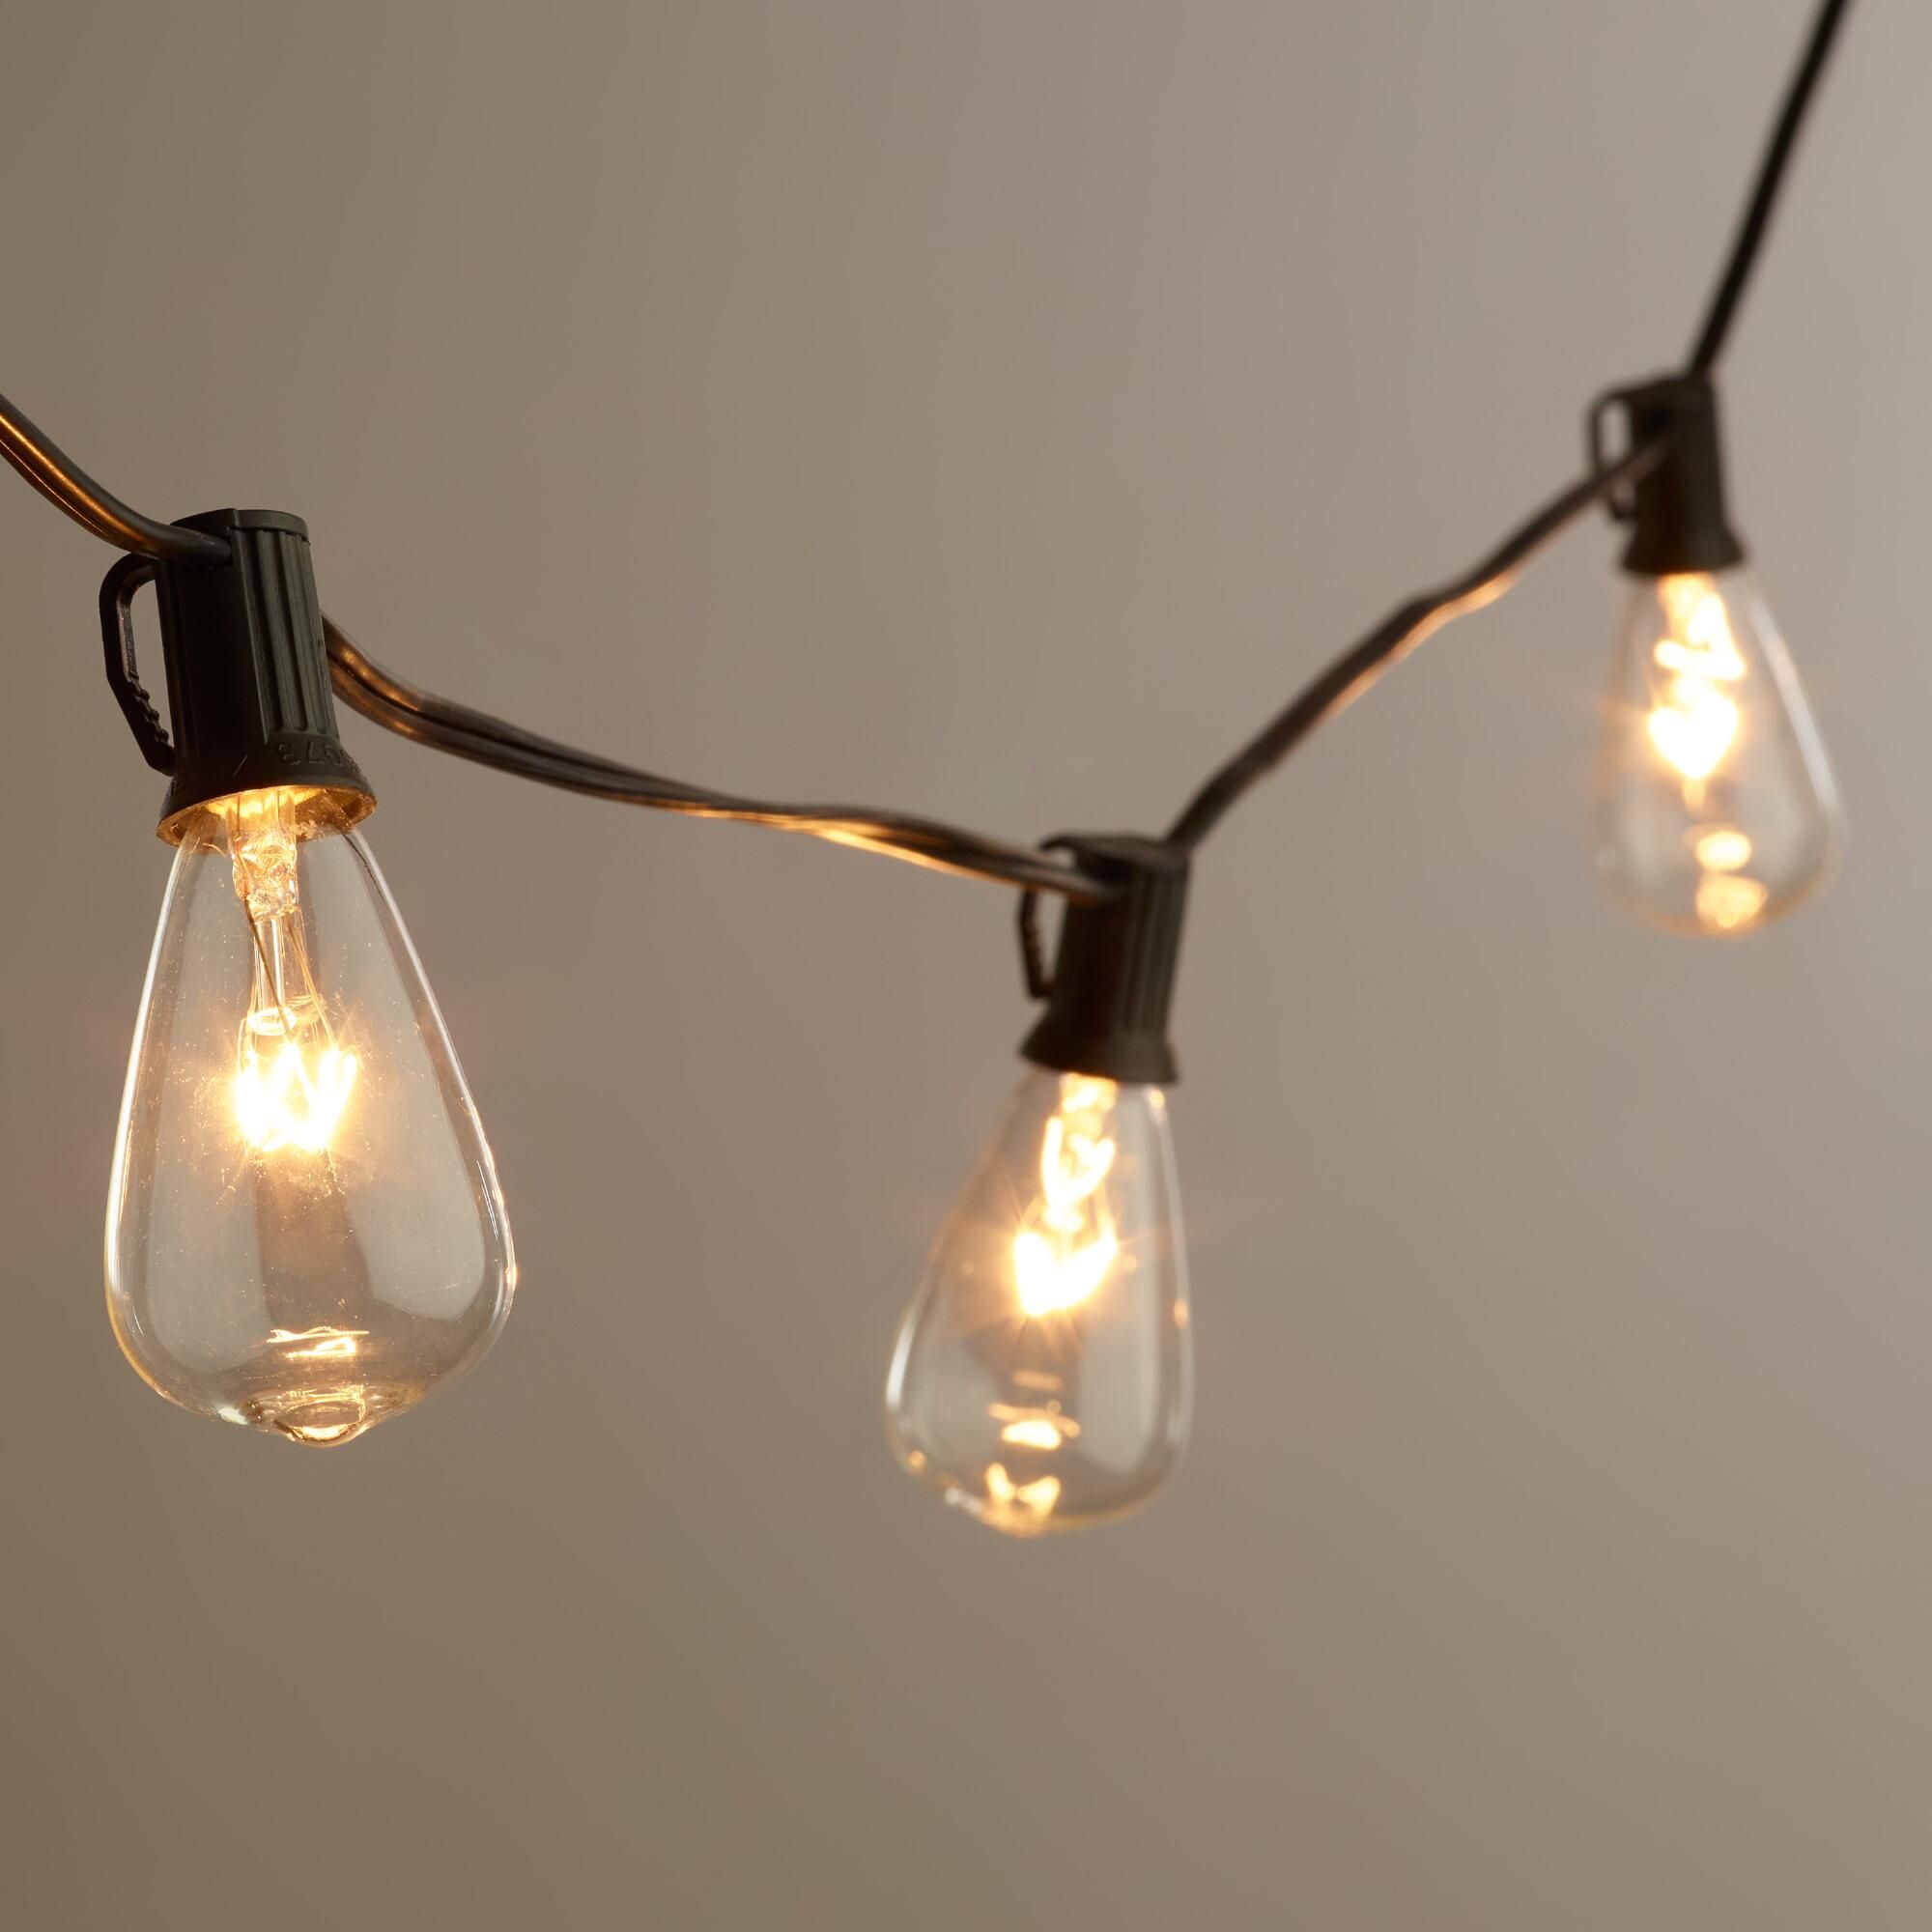 Replacement Bulbs For String Lights Inspiredthe Vintage Light Bulbs Inventedthomas Edison Our